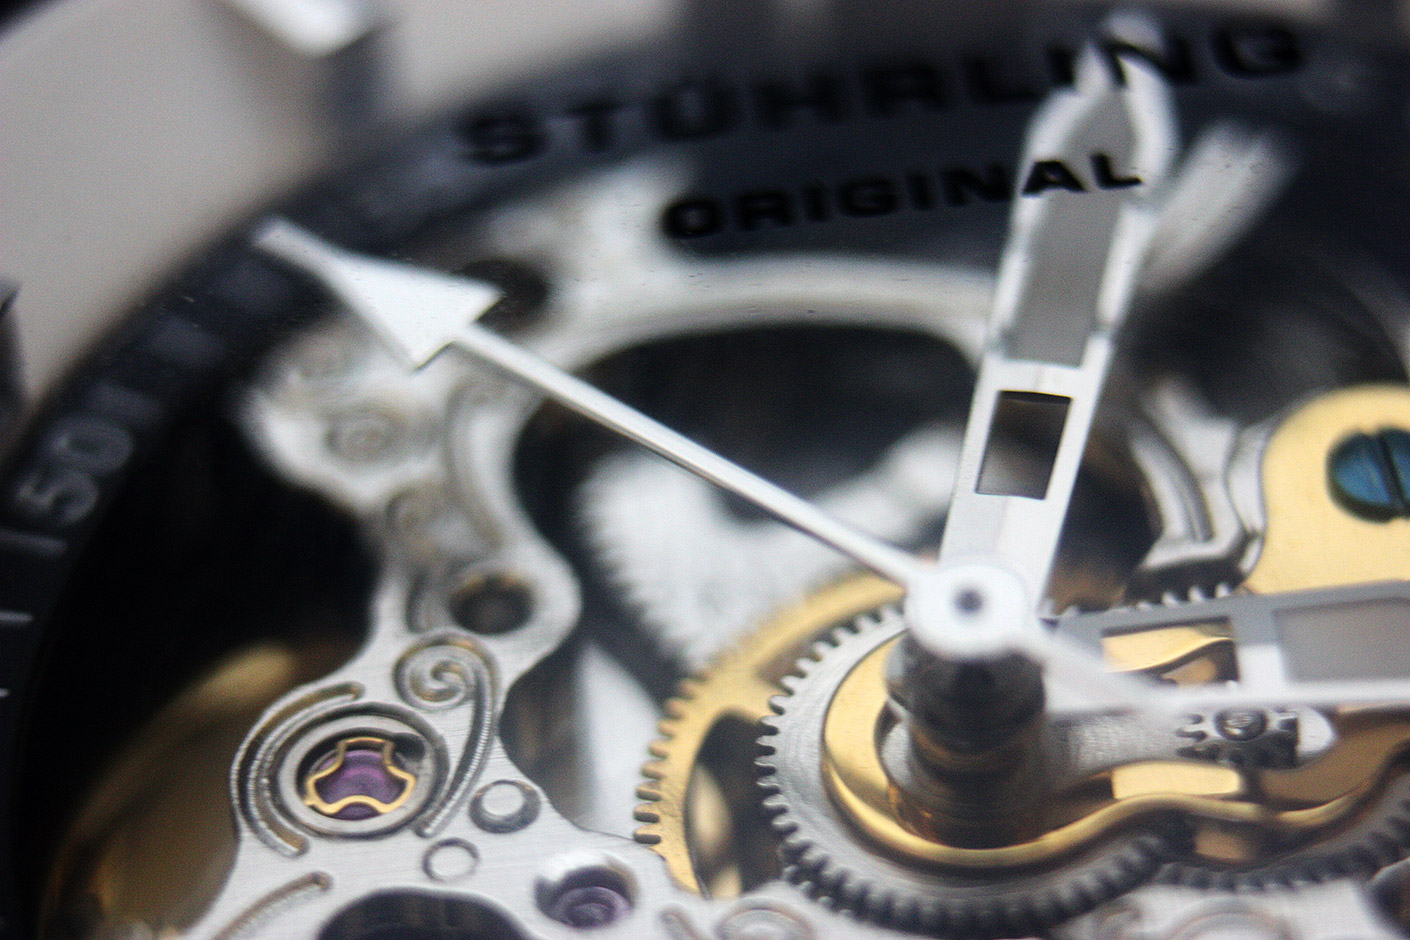 macro photo of watch gears